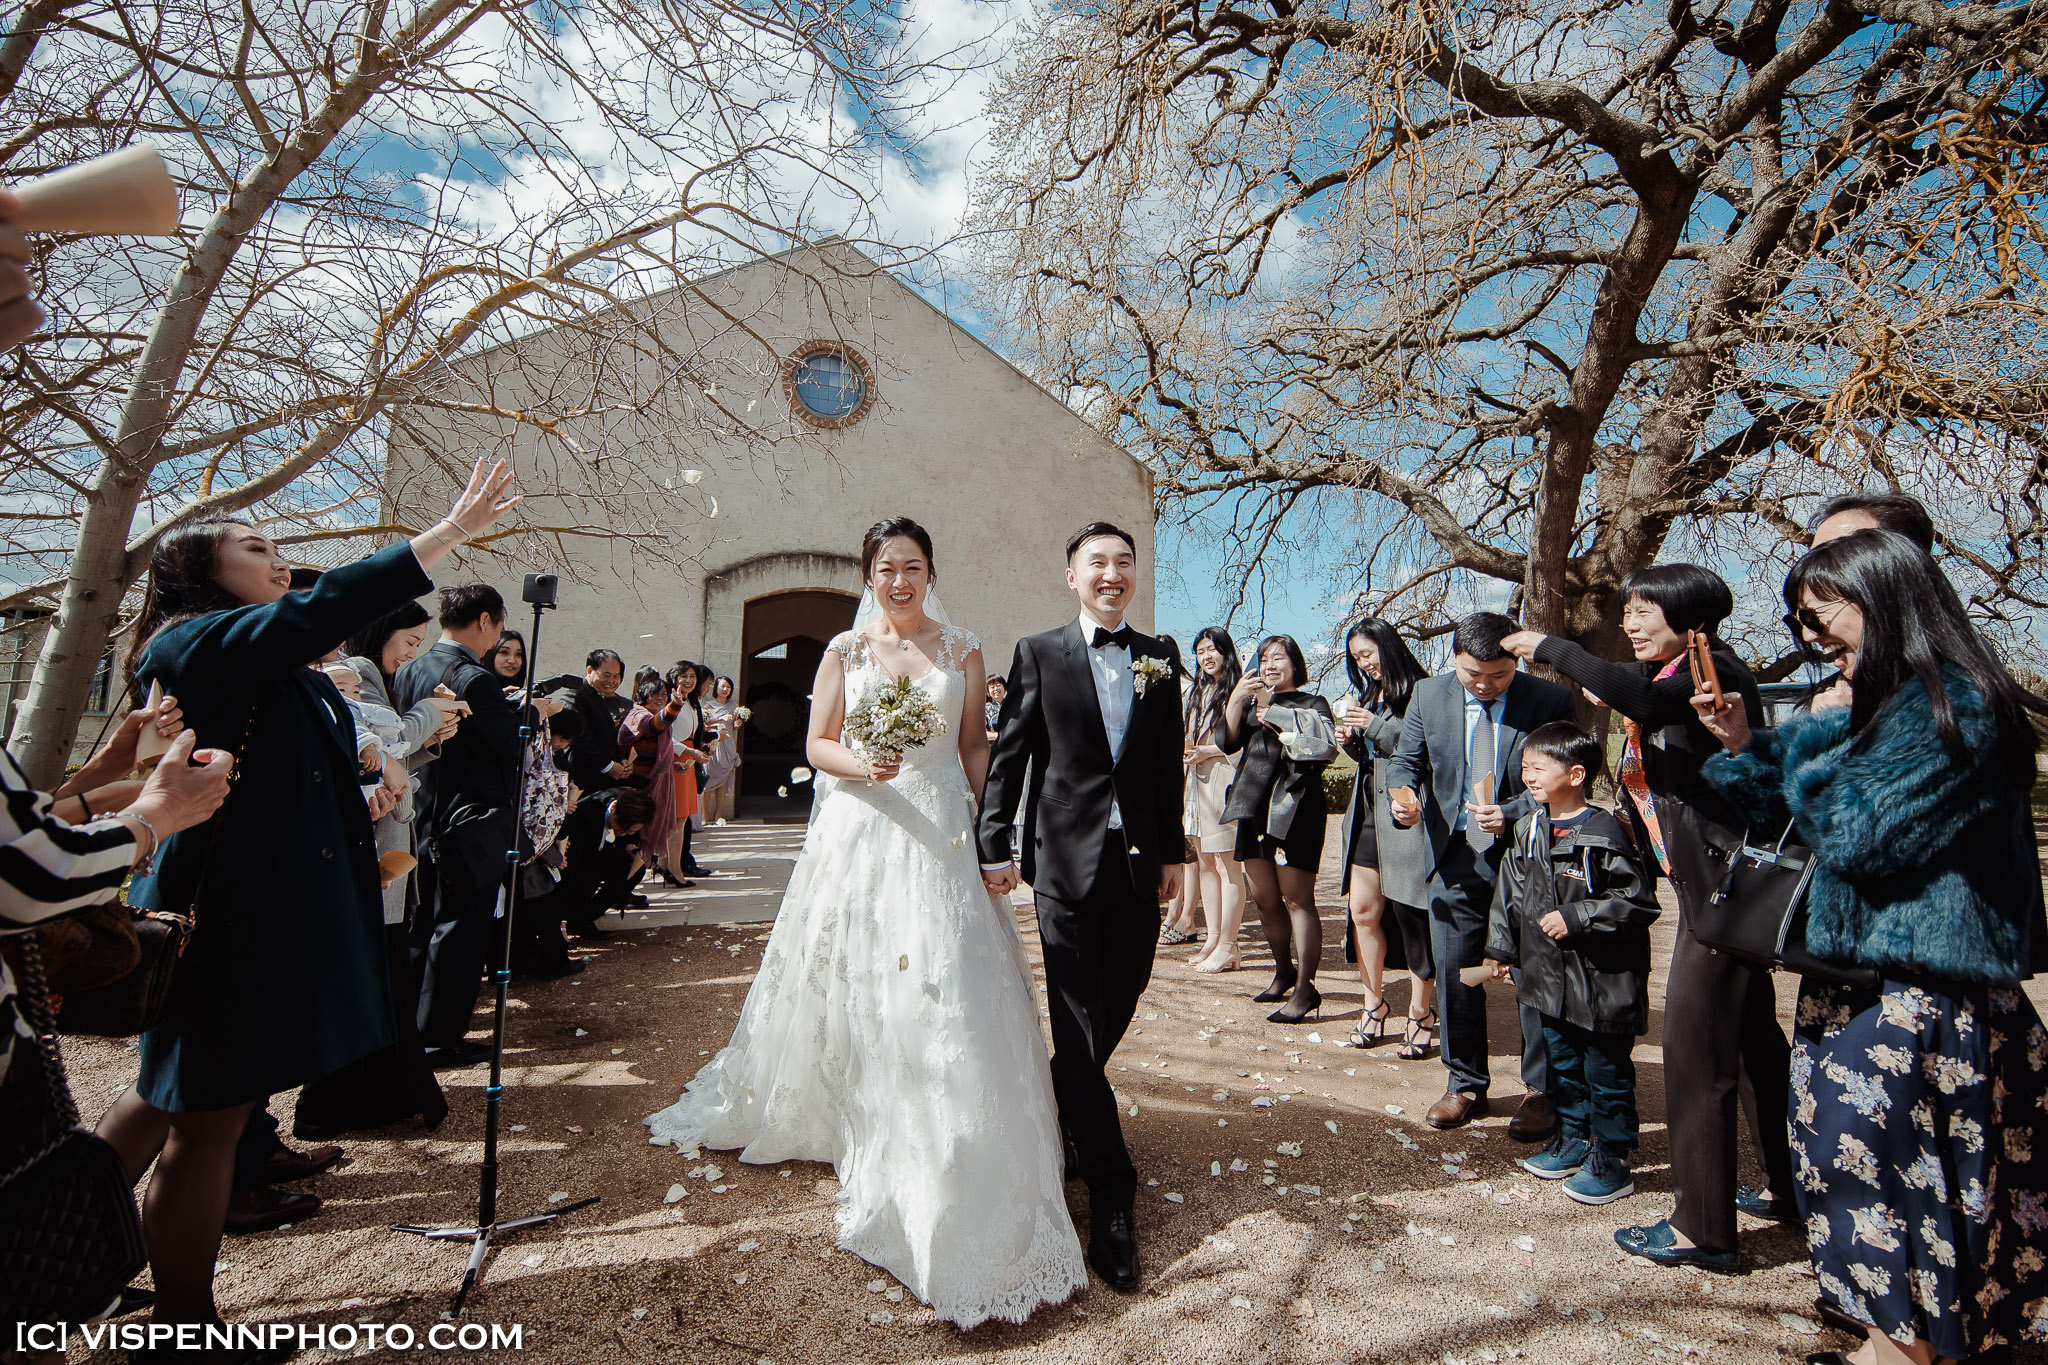 WEDDING DAY Photography Melbourne LeanneWesley 05531 2P 1DX ZHPENN